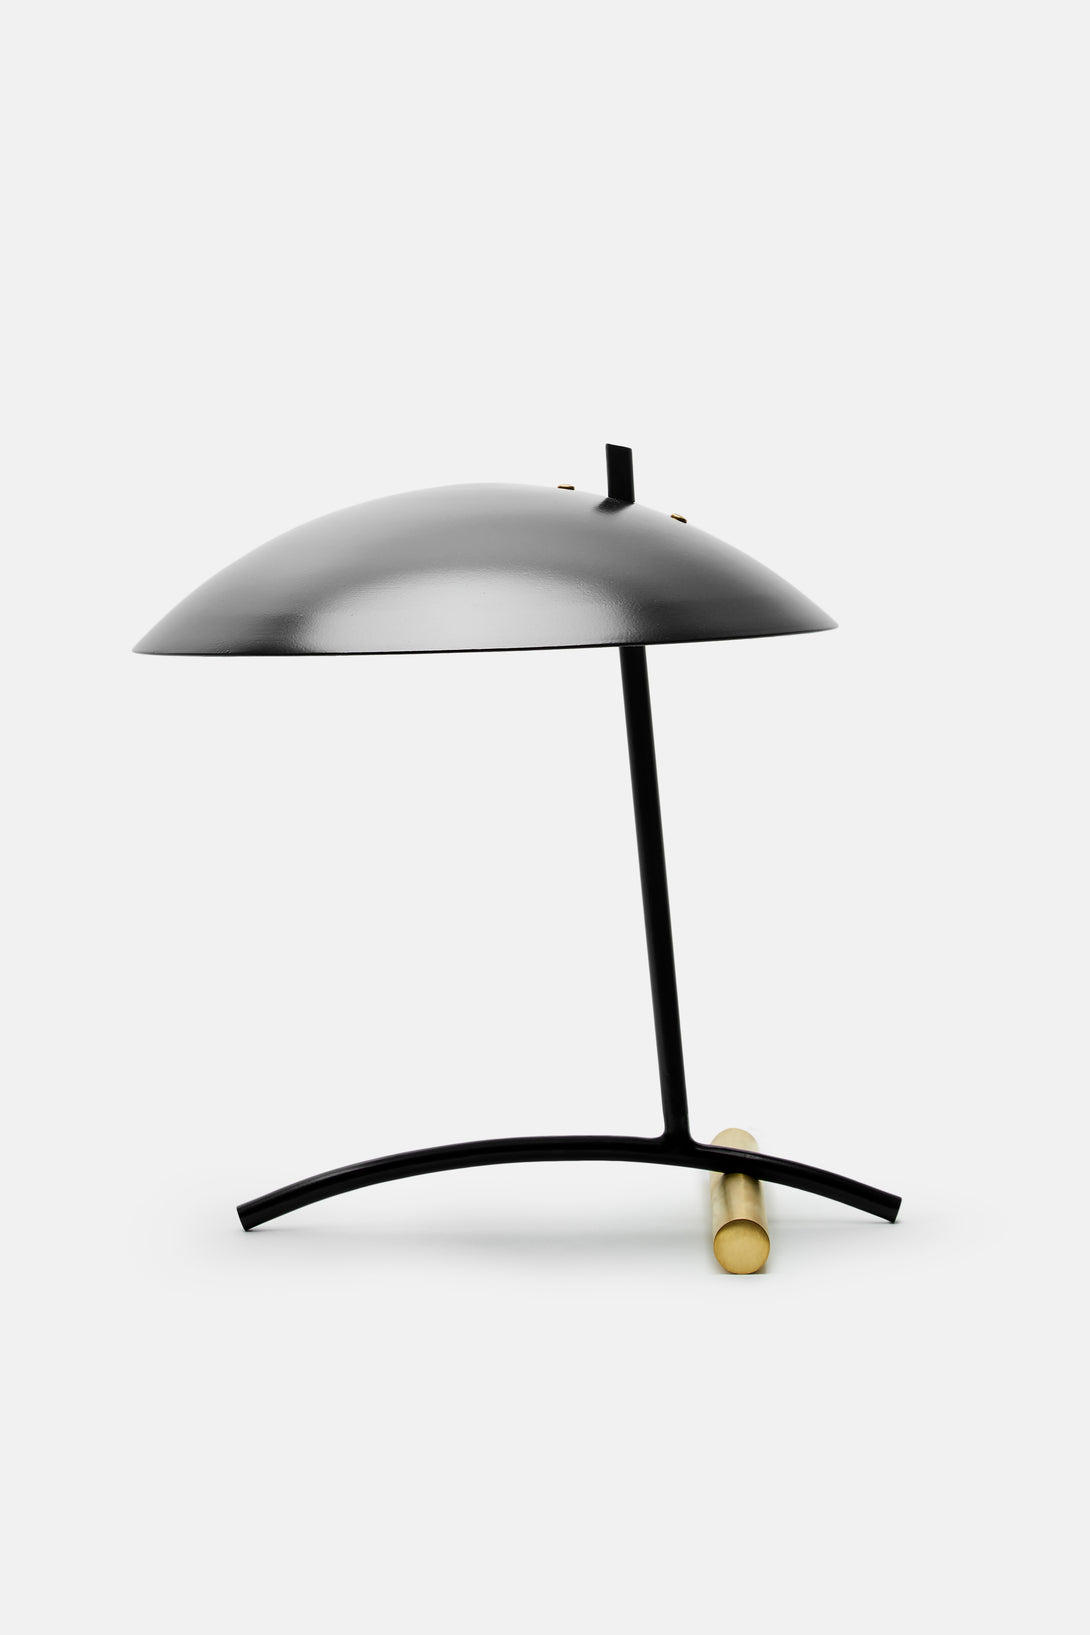 De Table Lamp